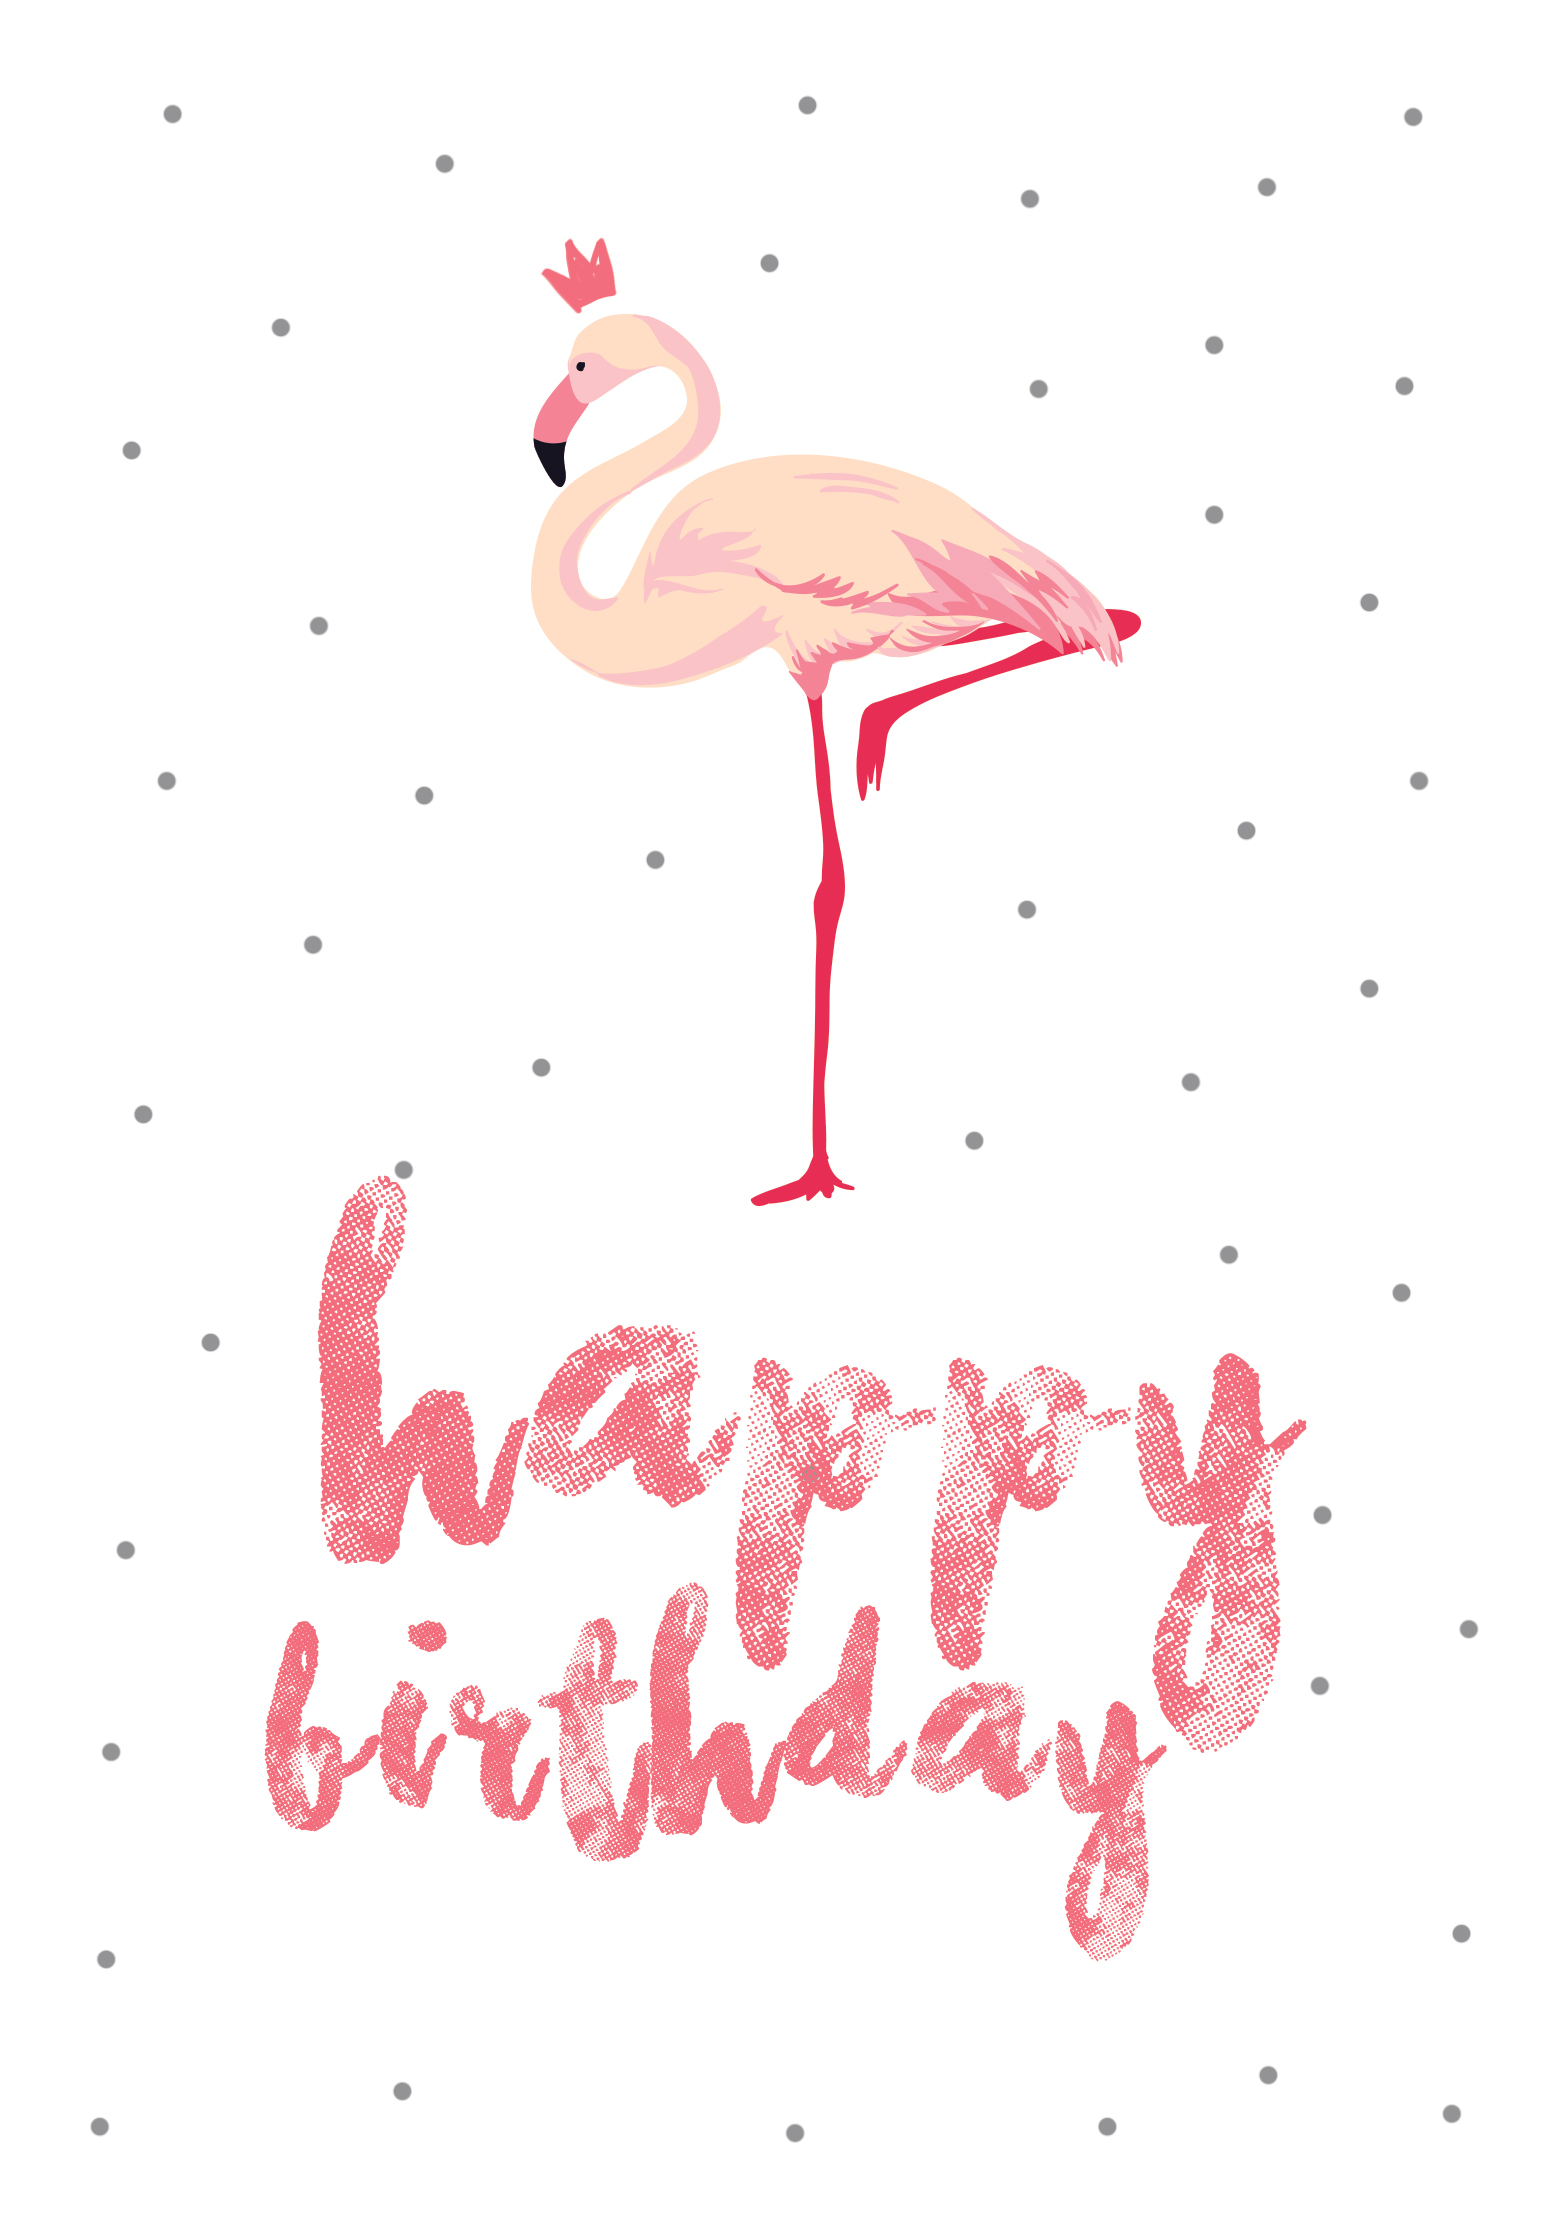 Flamingo Birthday - Free Printable Birthday Card | Greetings Island - Free Printable Thinking Of You Cards